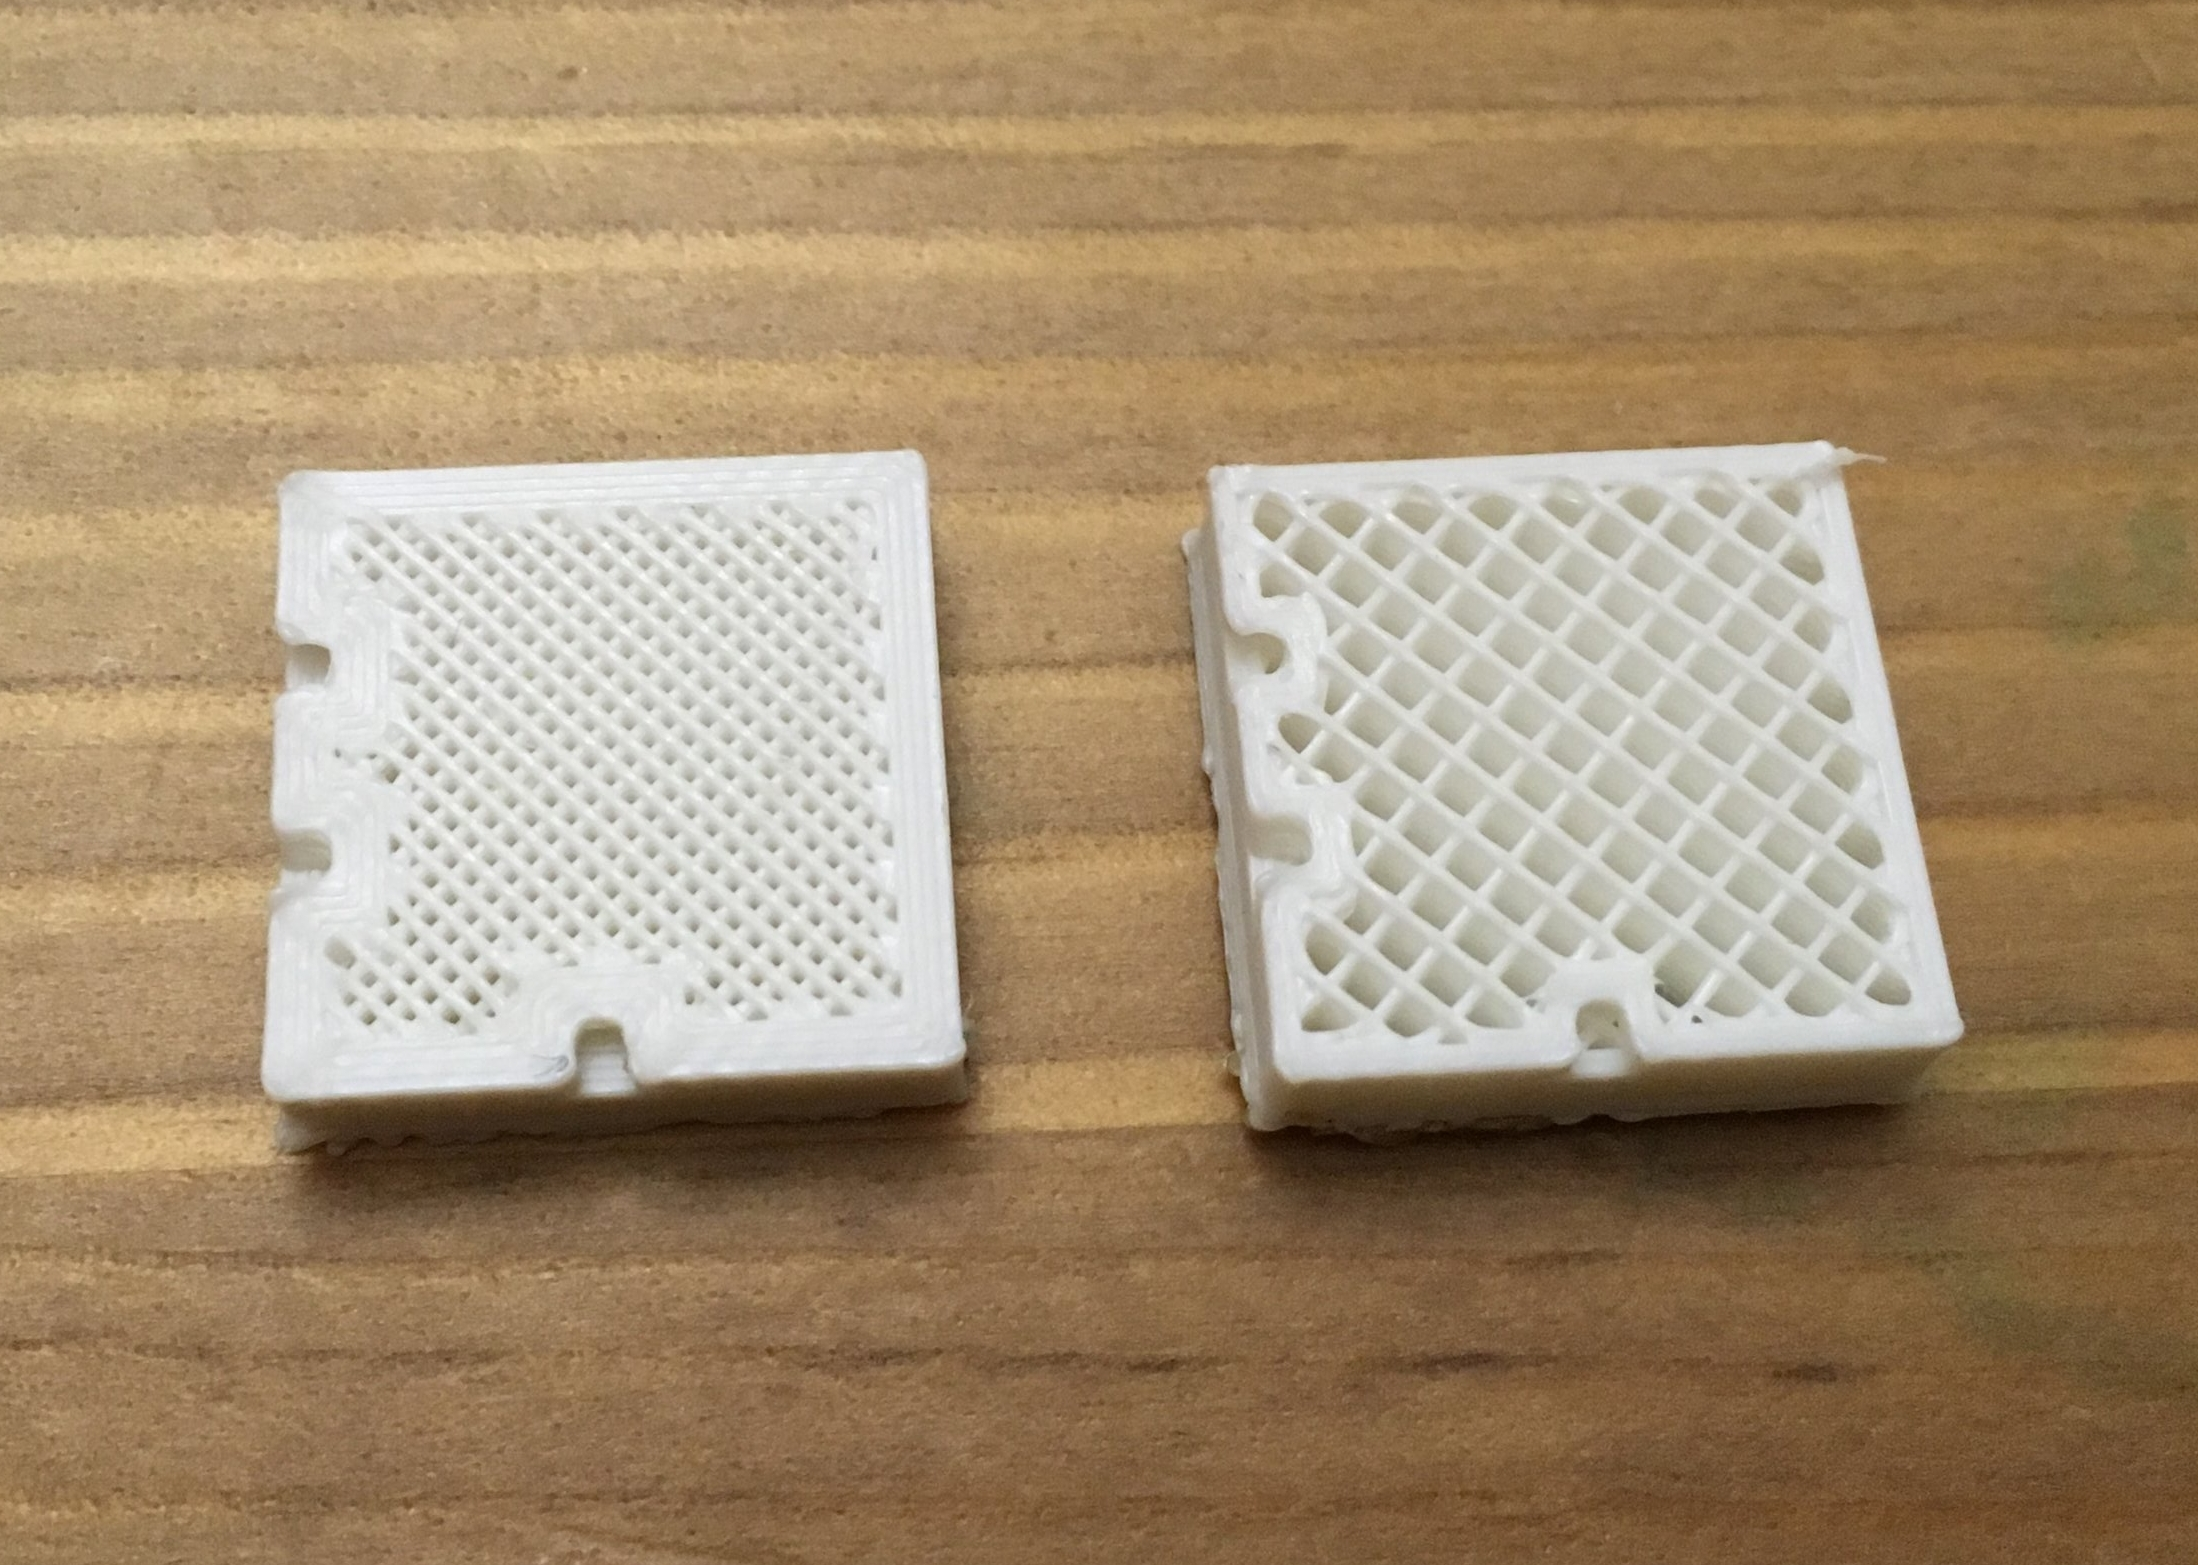 Print Settings Also Impact Part Strength. - The sample on the left (4 outer shells and 50% infill) is much stronger than the sample on the right (2 shells and 25% infill), regardless of material selection.